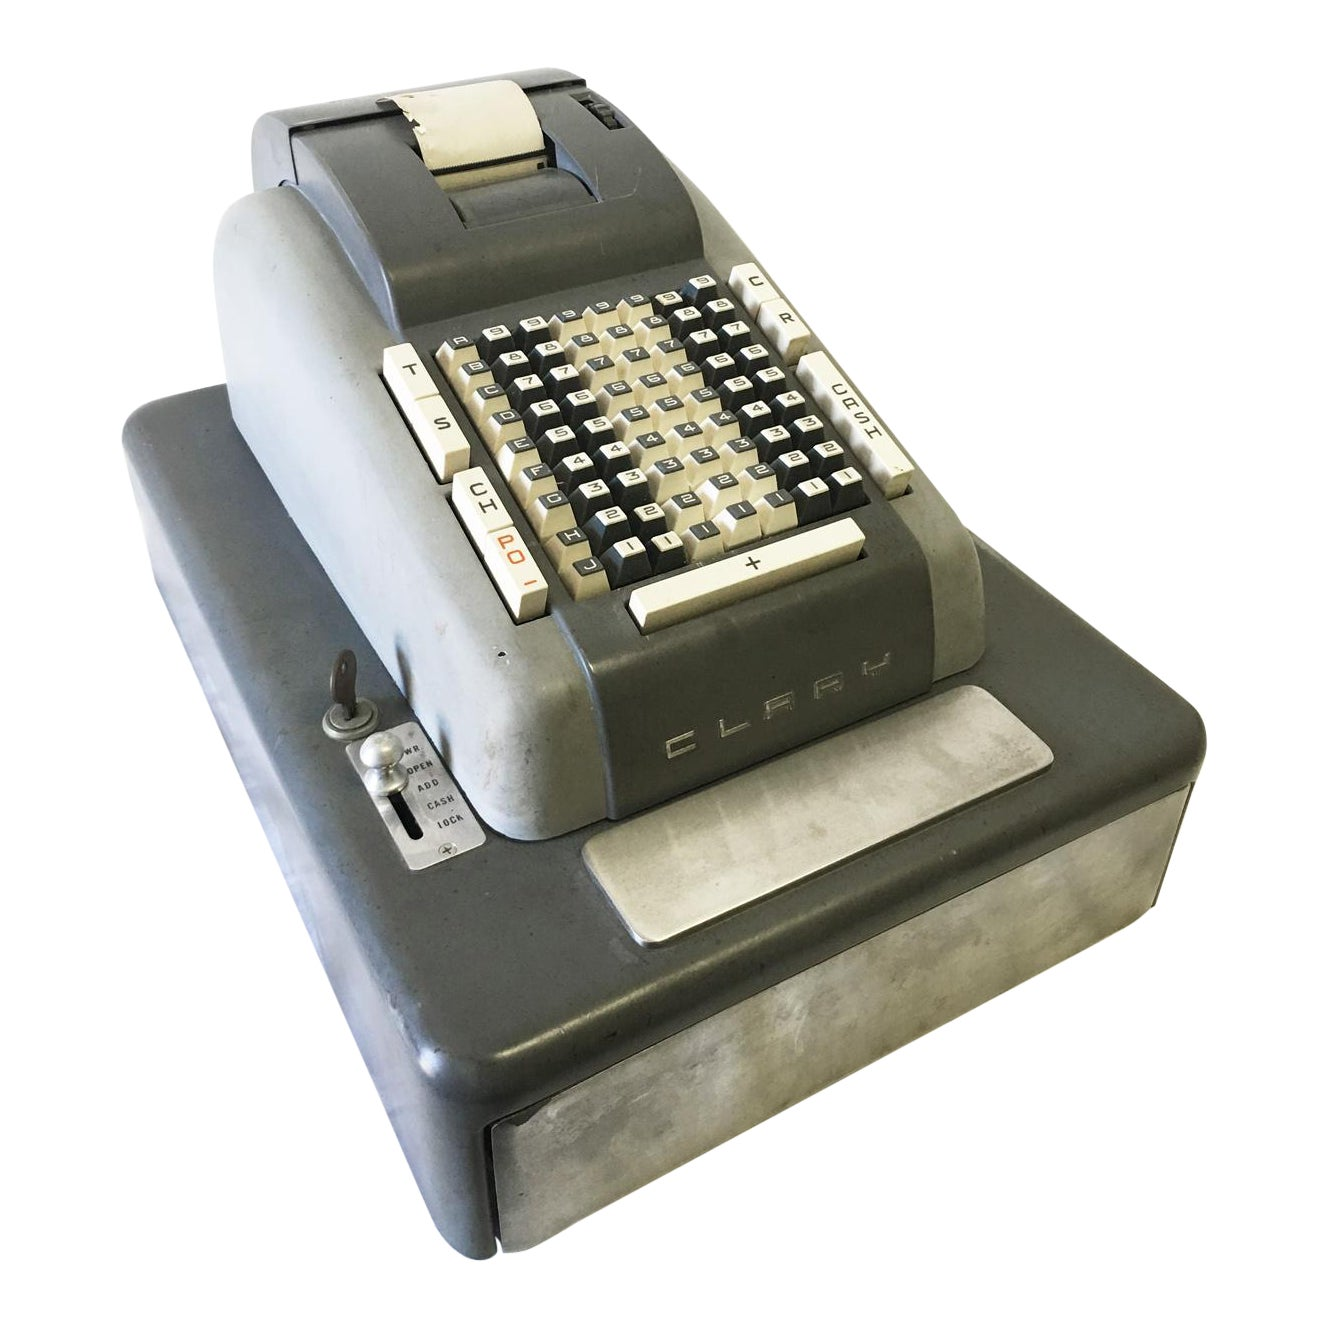 1950s Clary Electric Adding Machine Cash Register Chairish